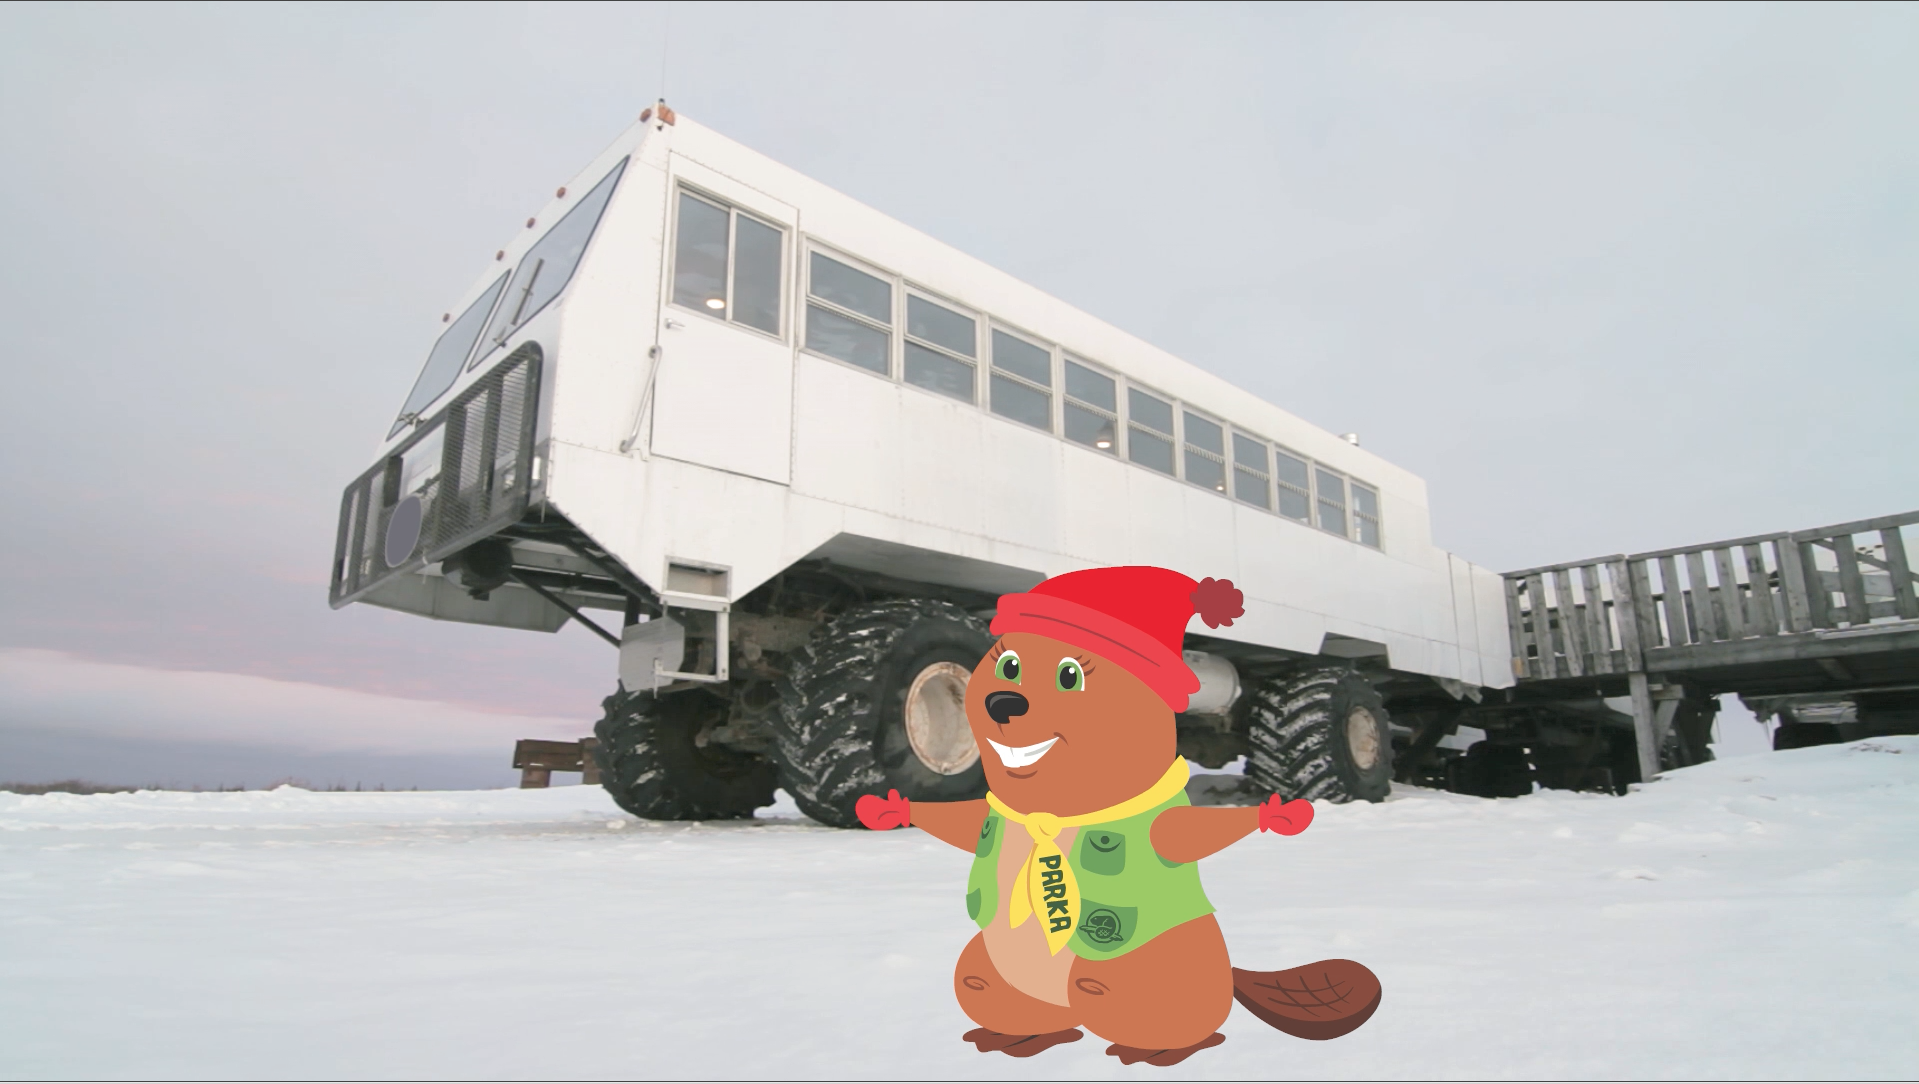 Parka visits the tundra to see Polar Bears and discovers why they need to use a big truck to get there.